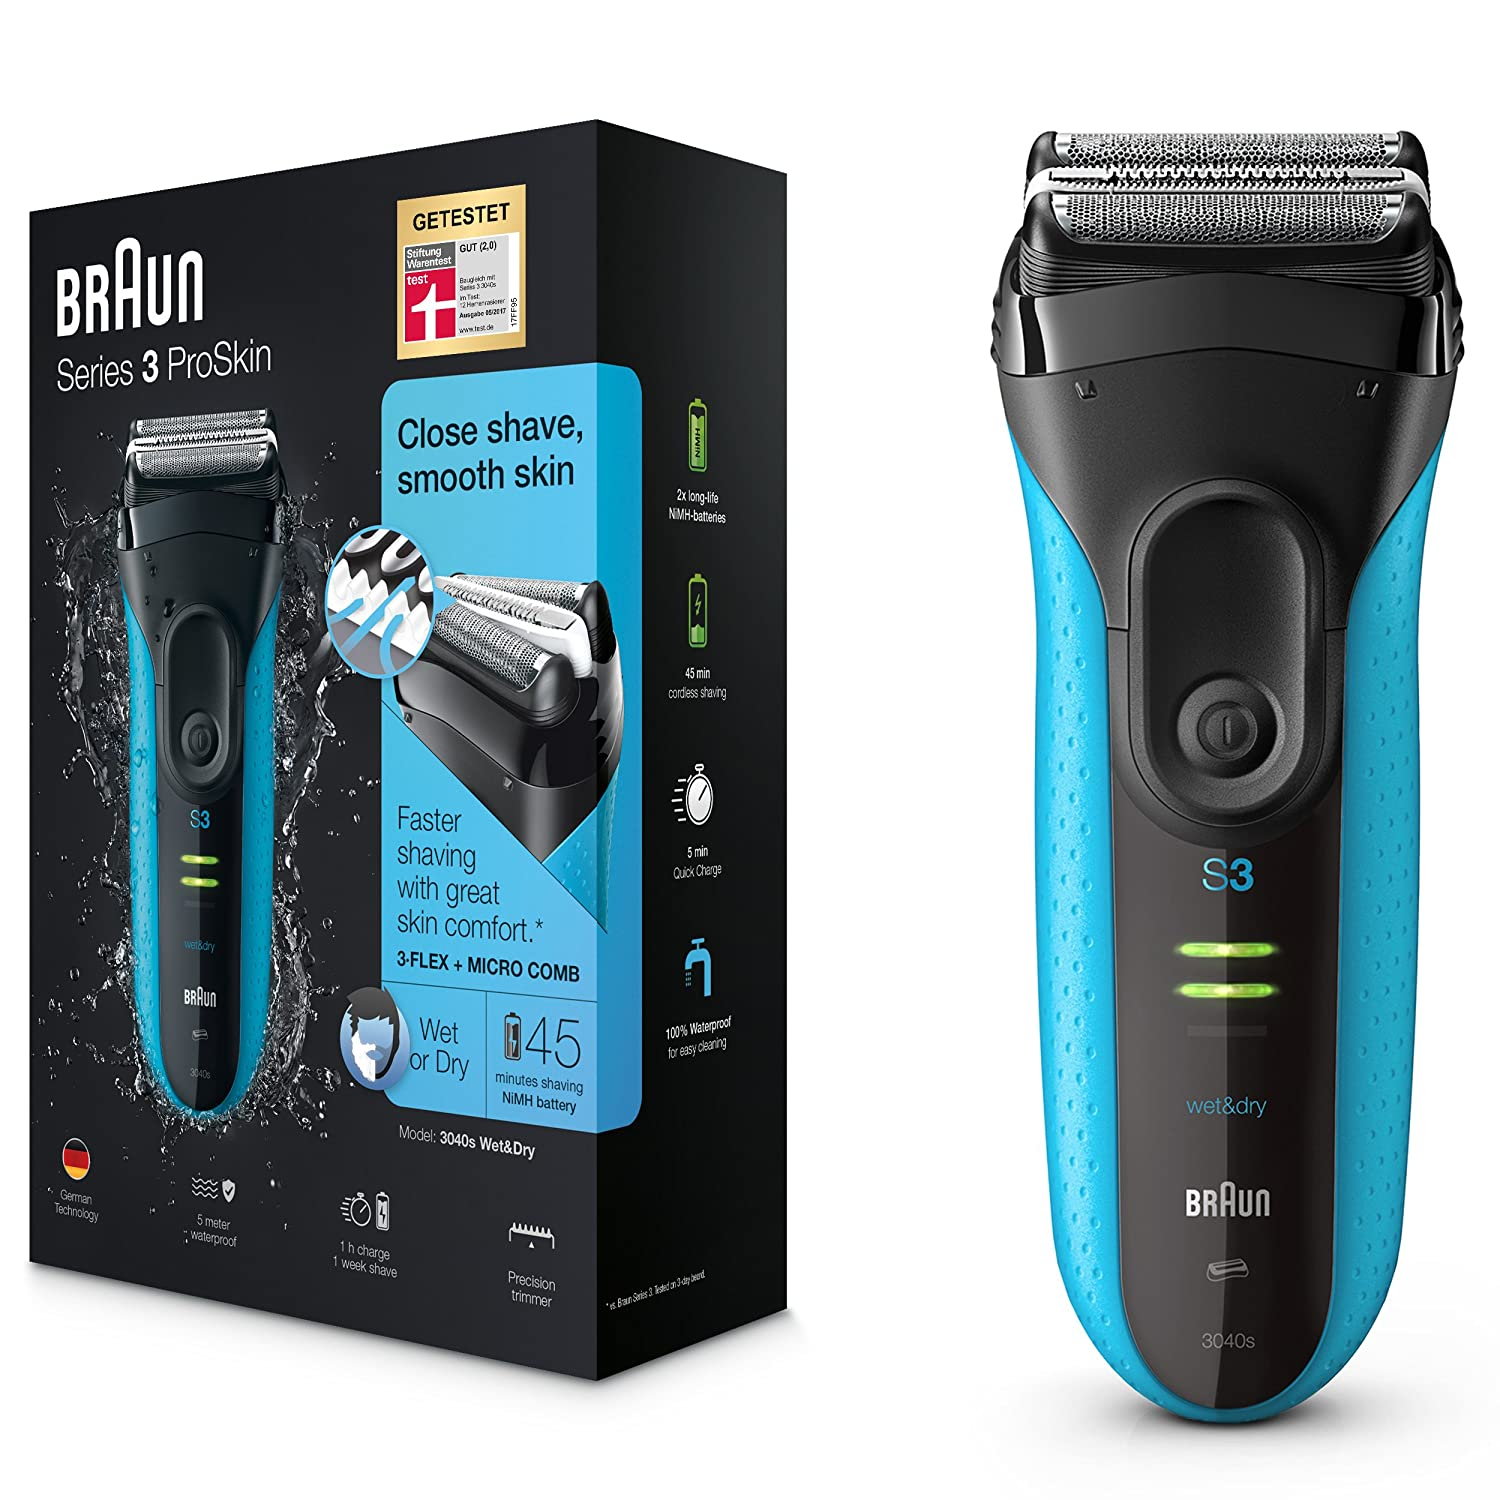 braun series 3 proskin 3040s electric shaver for men review go4amz gadget reviews oral b. Black Bedroom Furniture Sets. Home Design Ideas